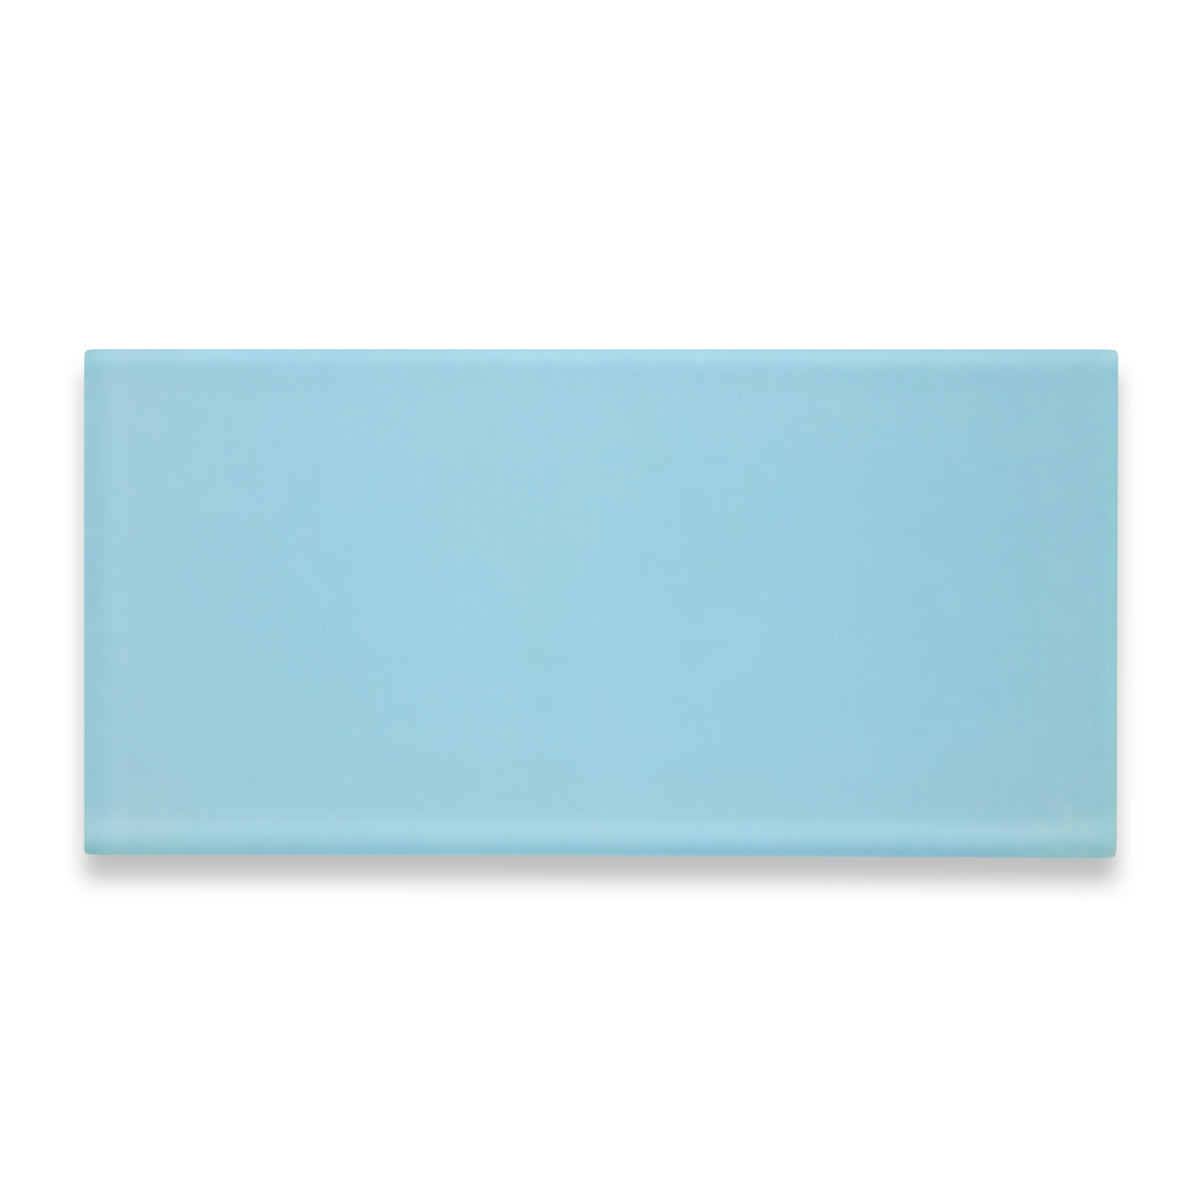 "Beach Tile 4"" x 8"" Glass Tile - Ice"